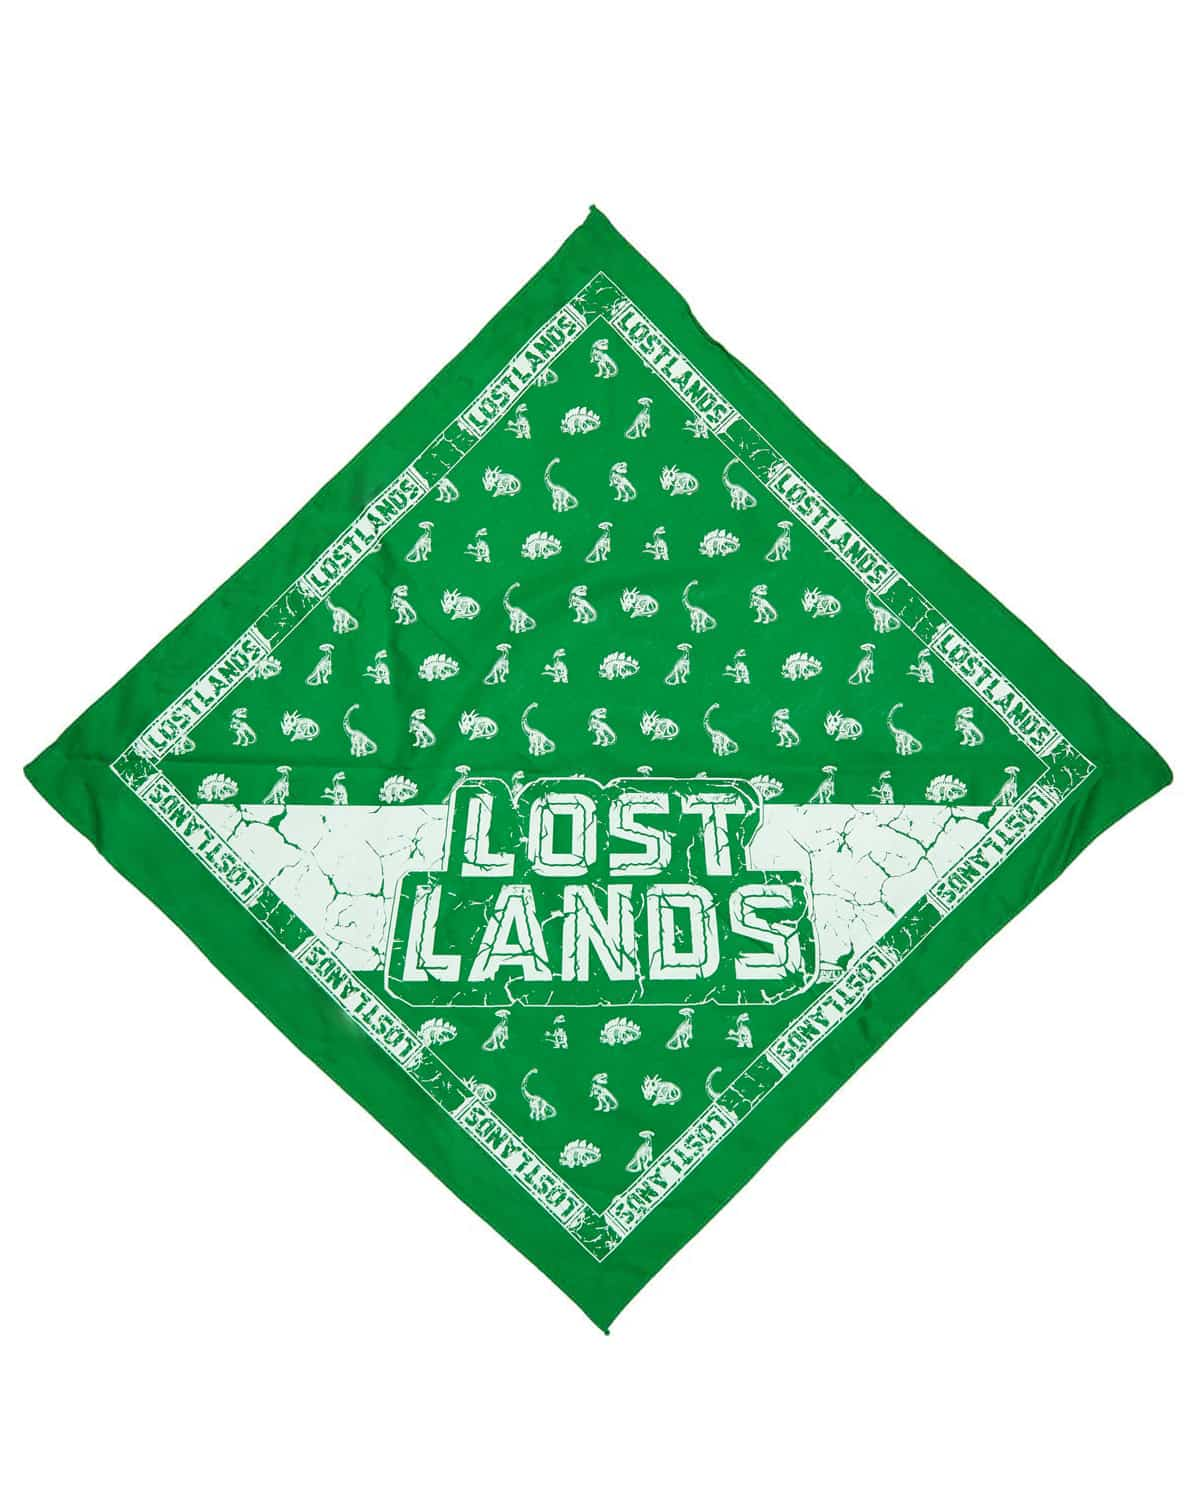 Lost Lands 2018 'Fossils' Bandana